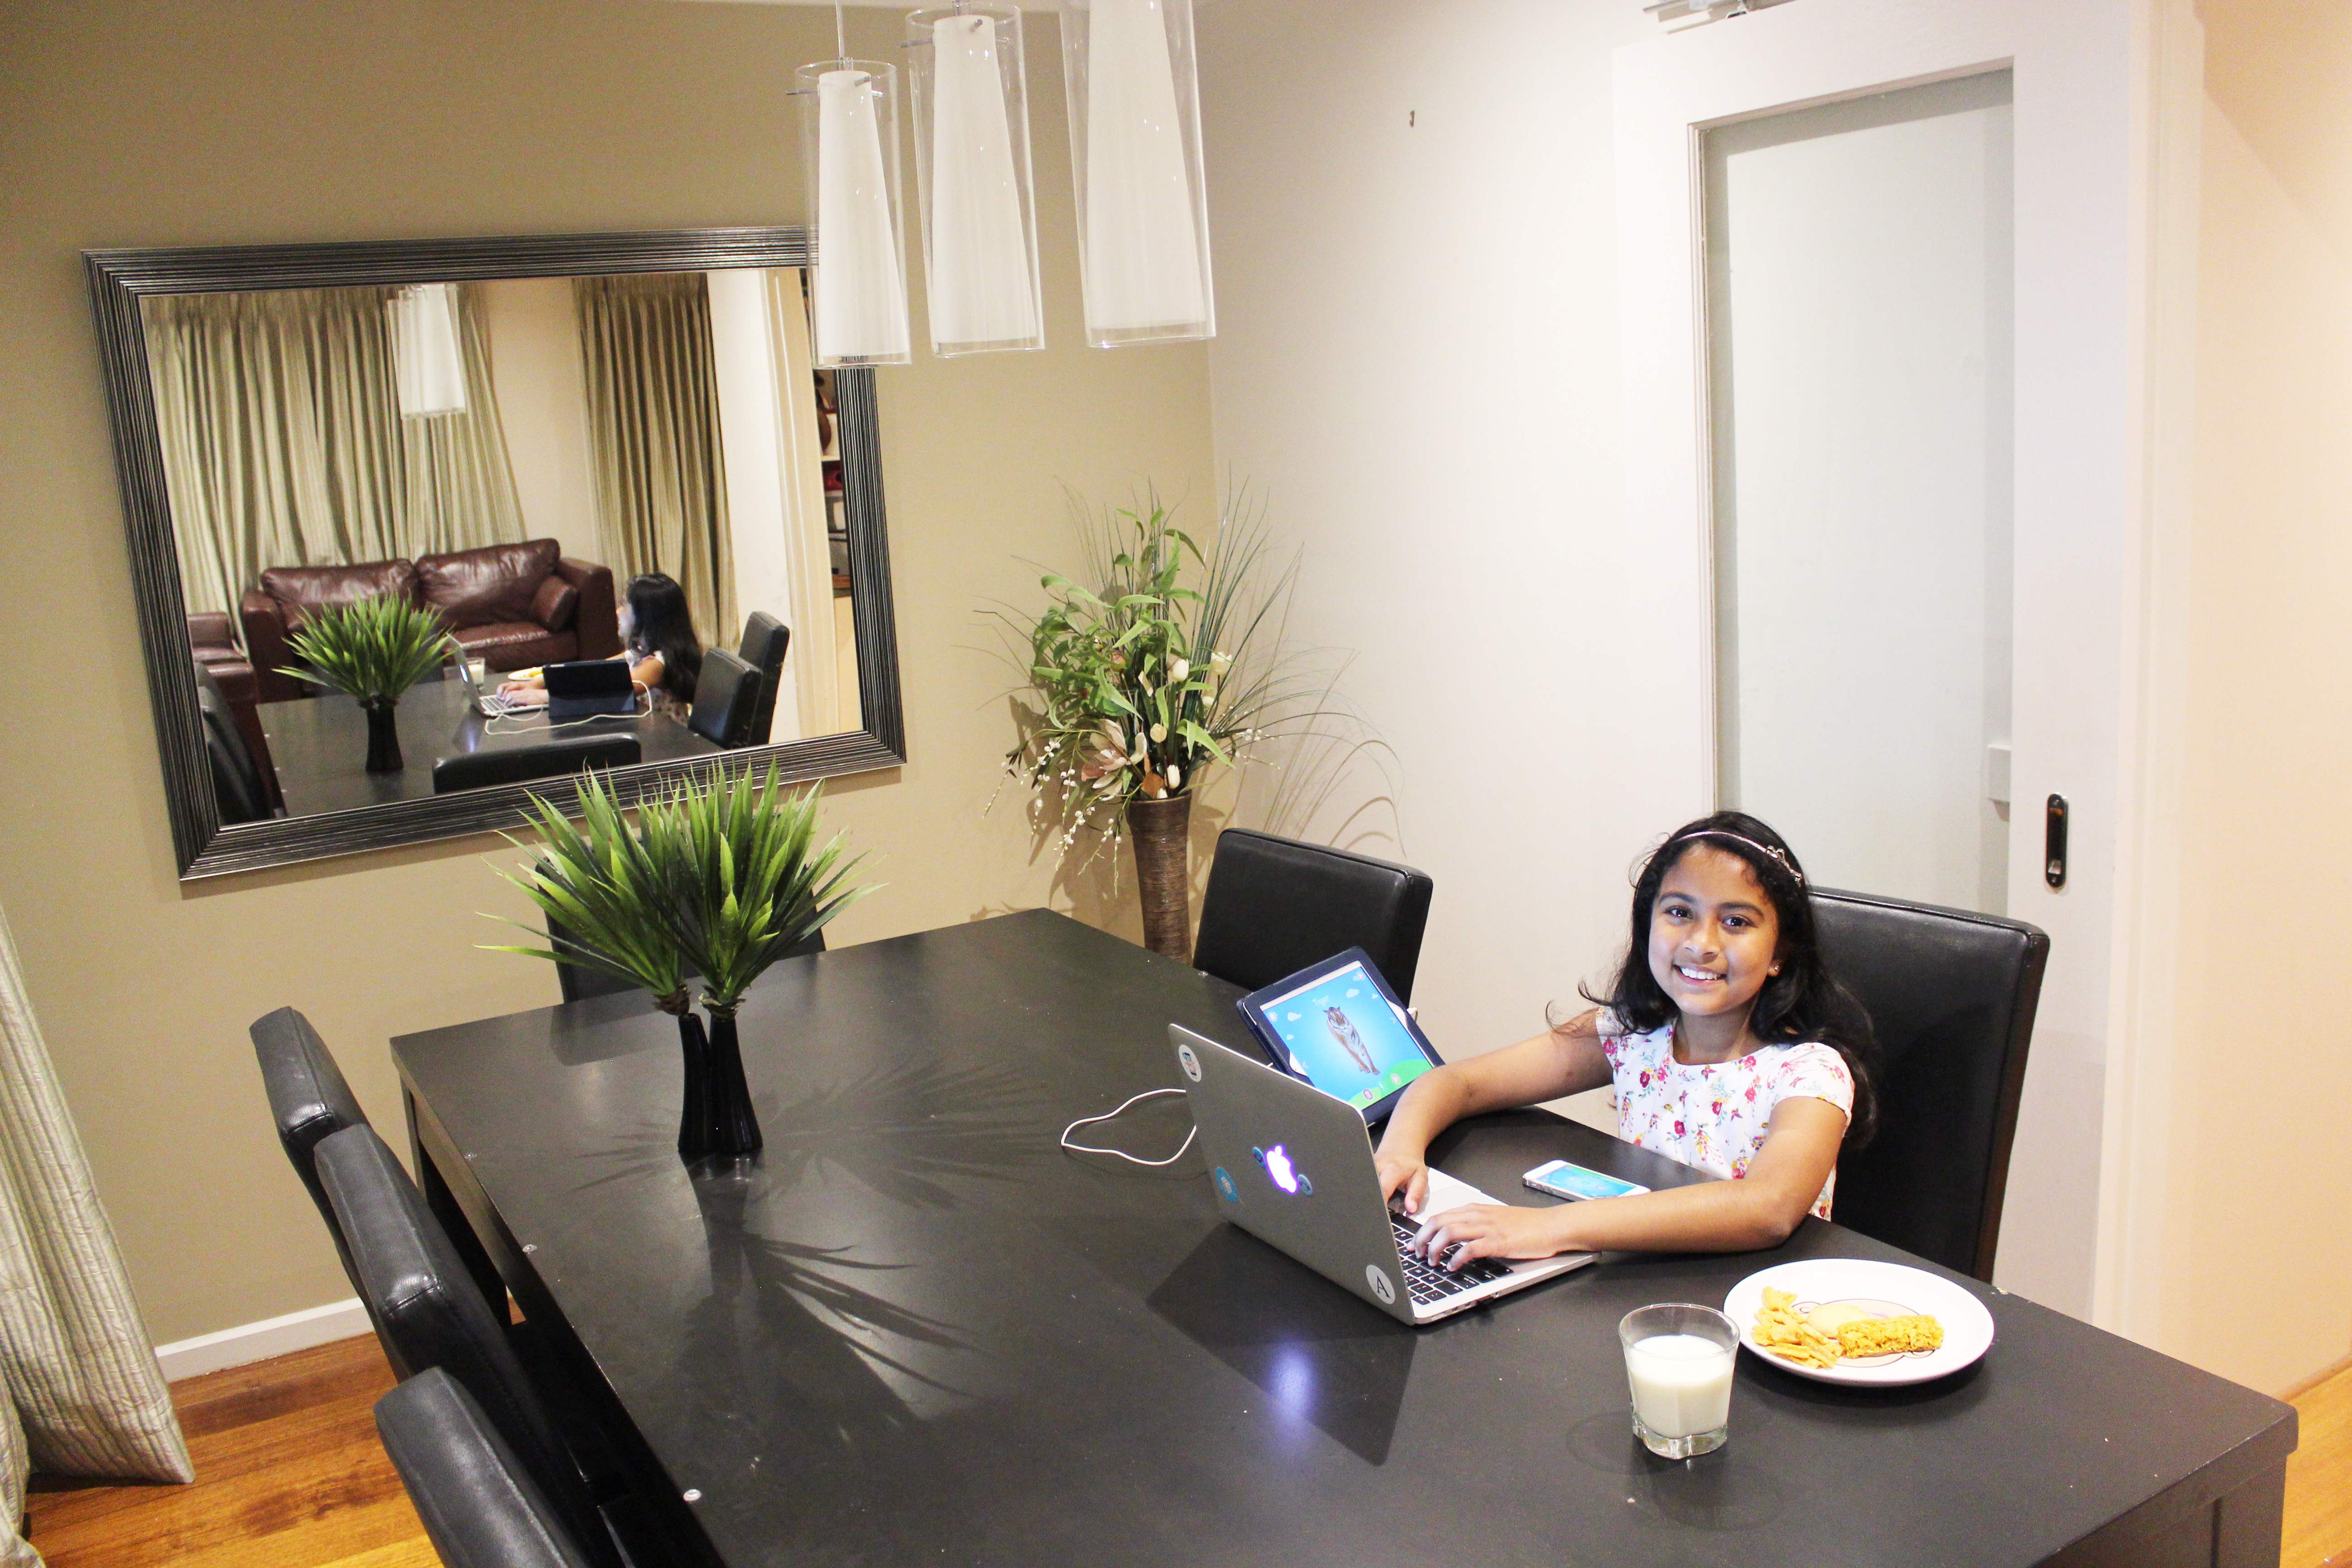 Nine-year-old Anvitha Vijay, who will be Apple's WWDC's youngest attendee.